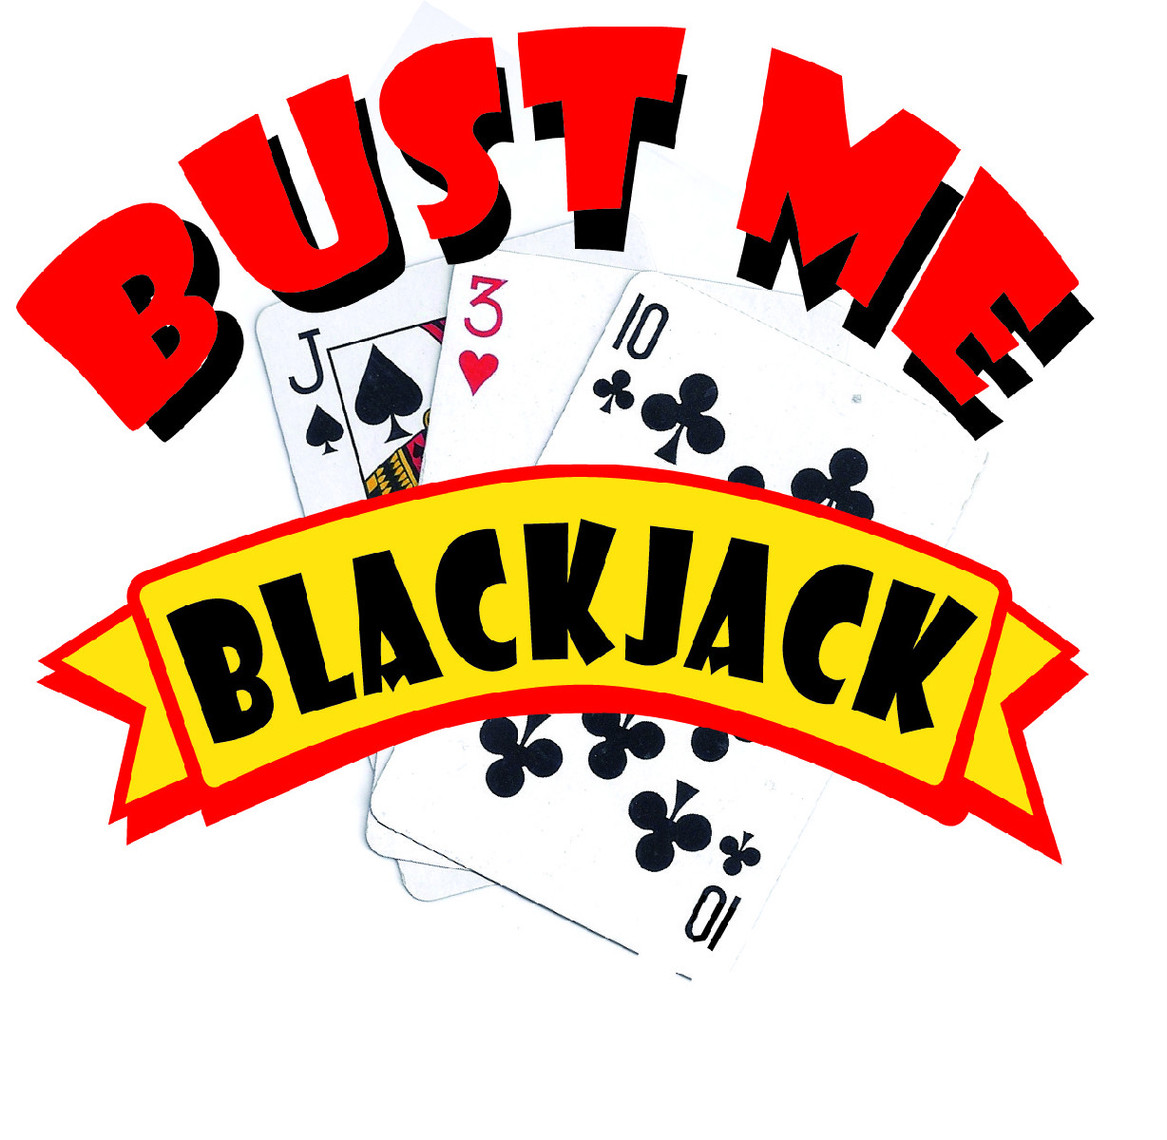 Bust Me Blackjack Valley View Casino CA Discount Gambling Clipart.